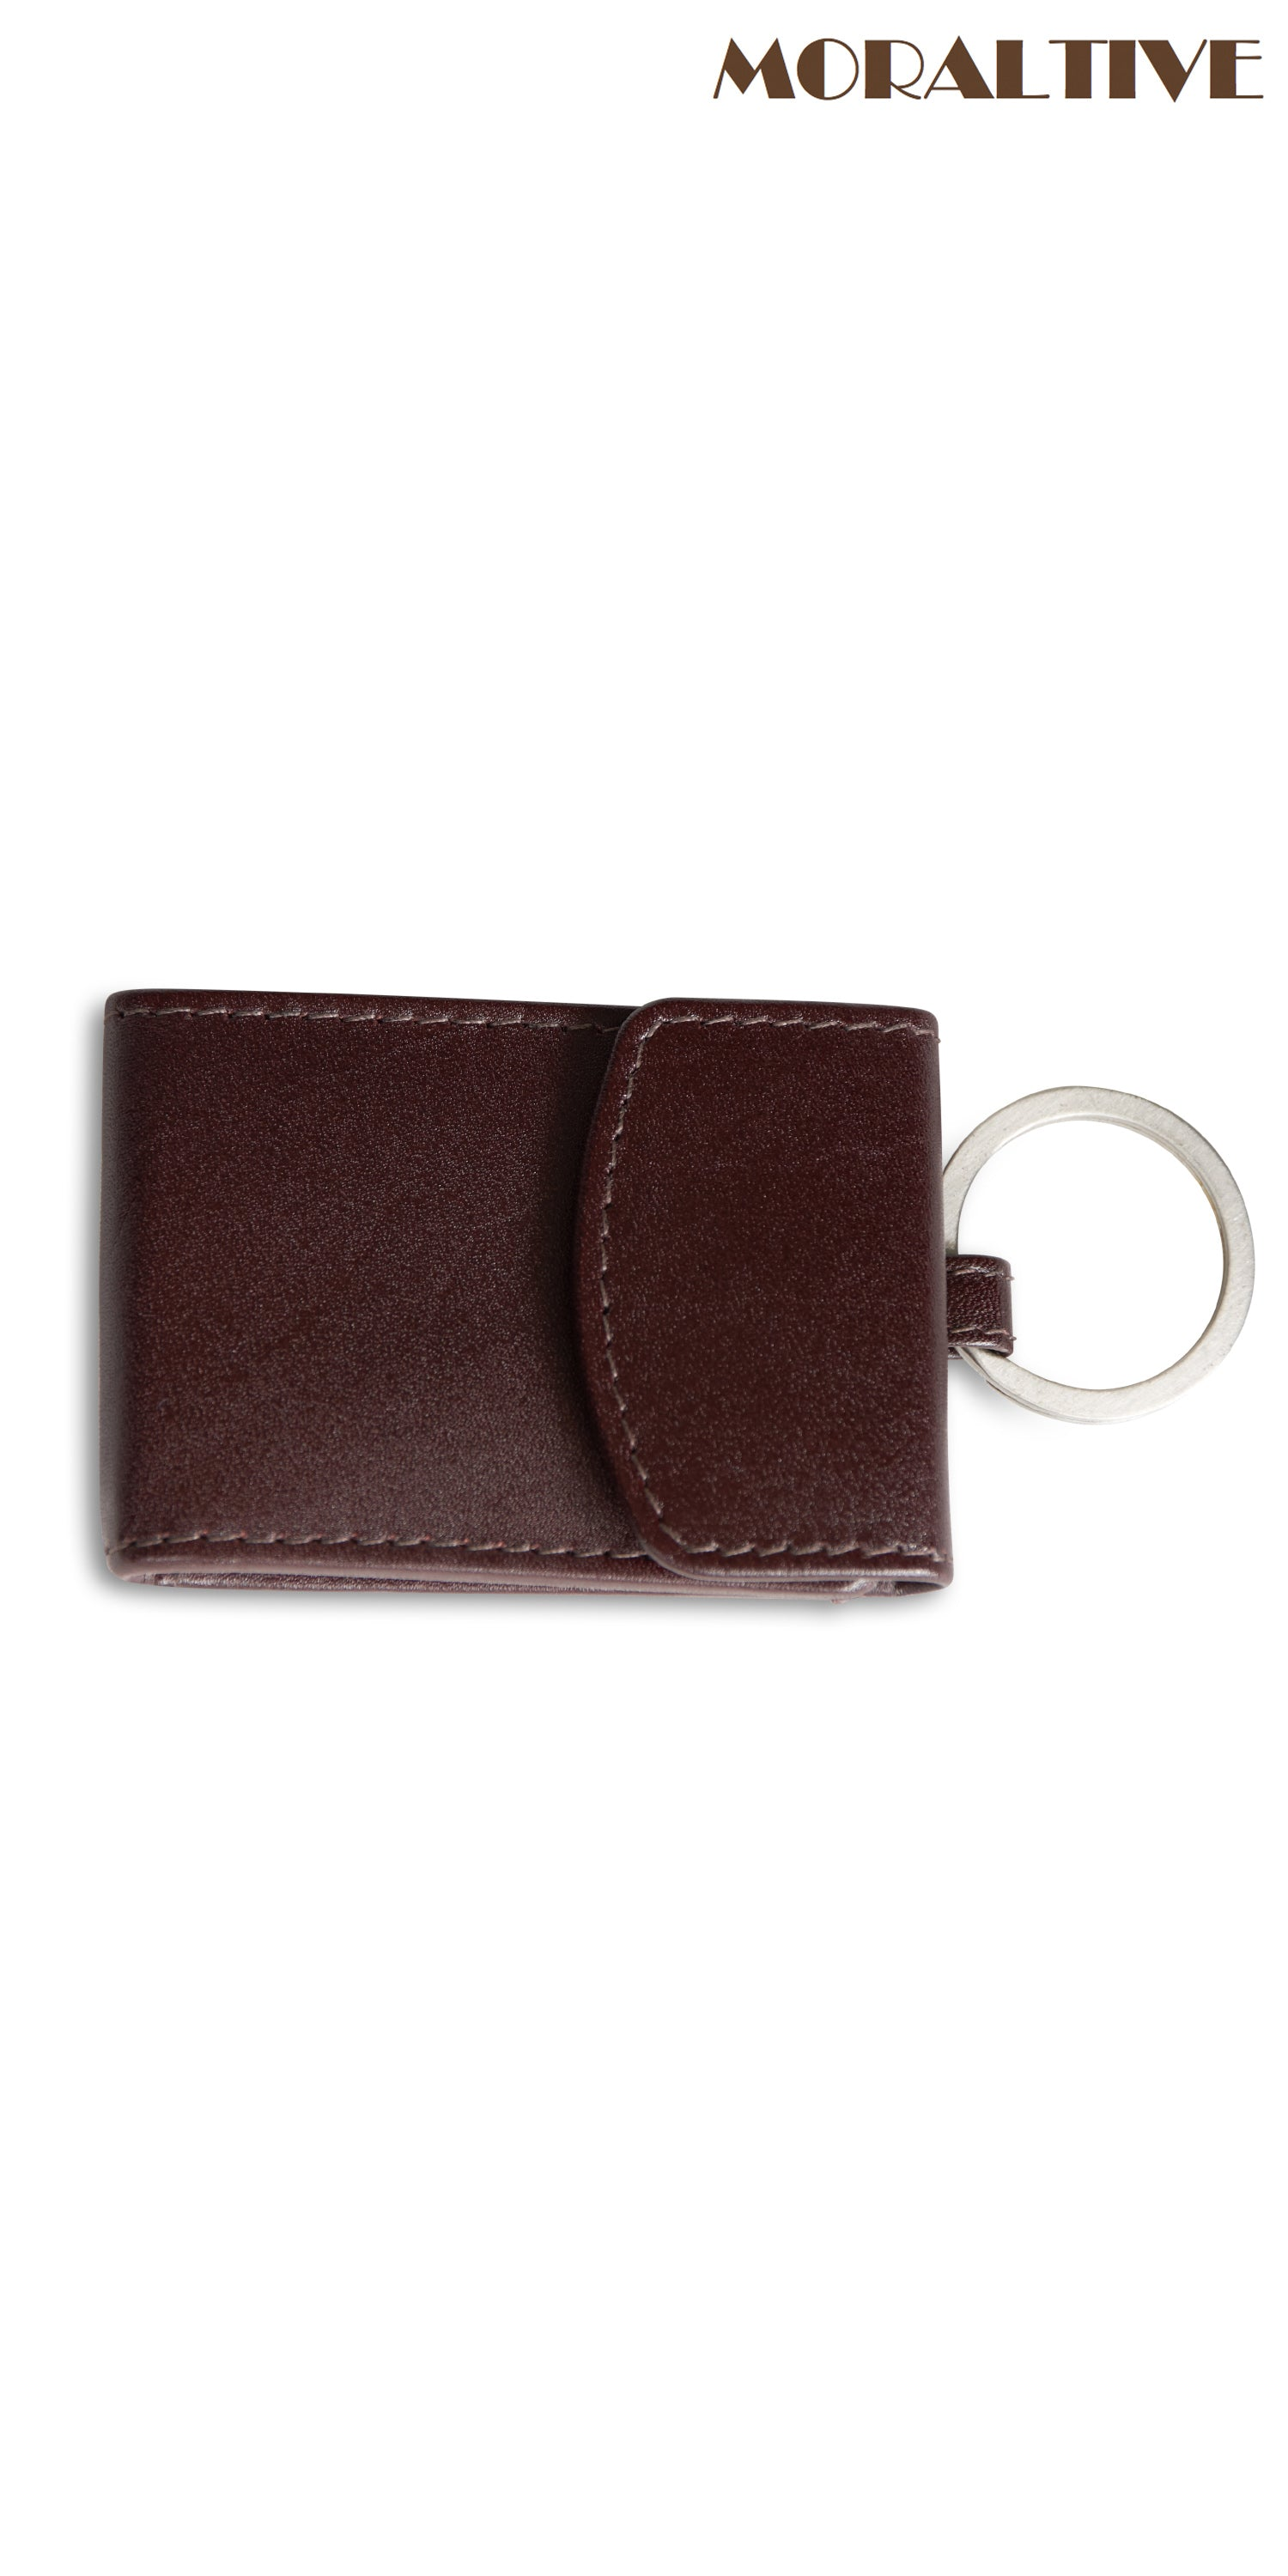 Moraltive Keyring with Purse Brown